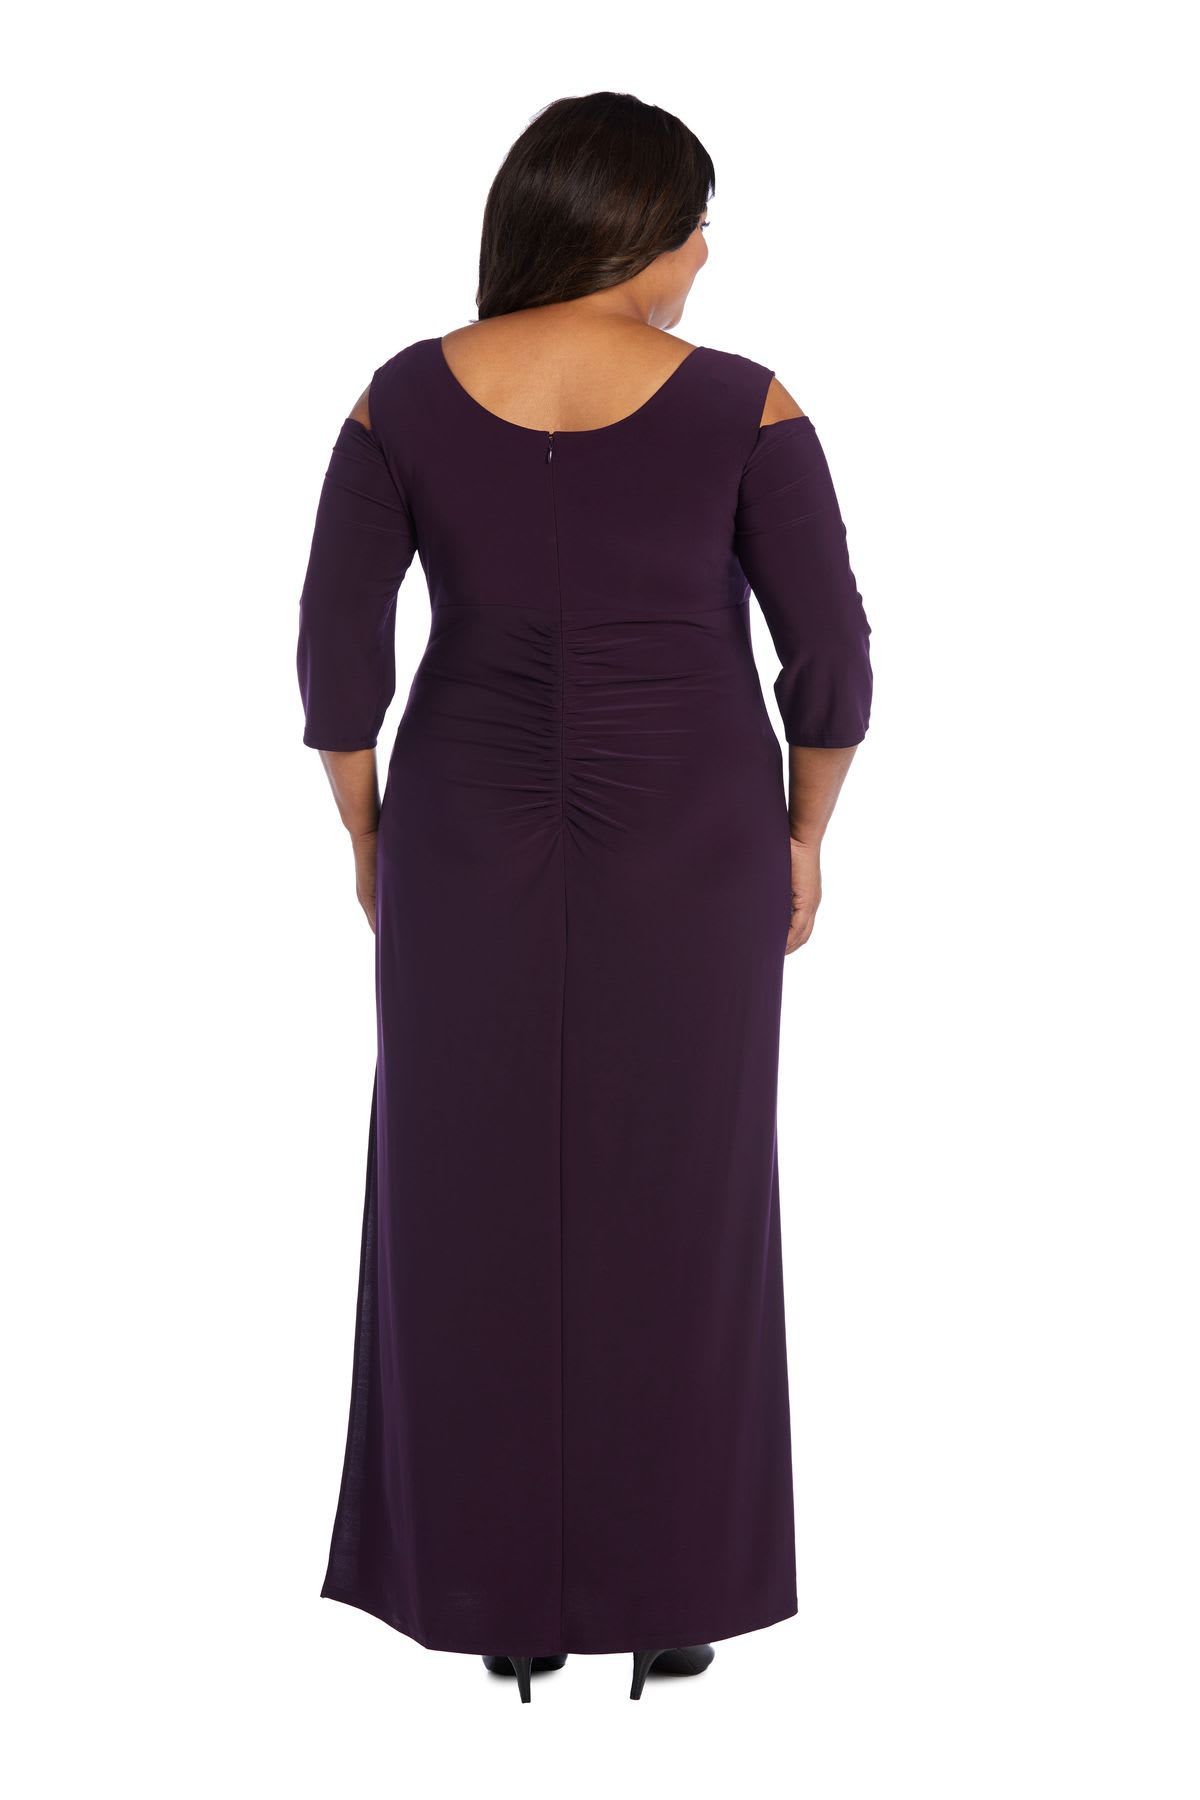 Column Evening Gown with Shoulder Cutouts and Diamante Embellishments - Plus - Plum - Back